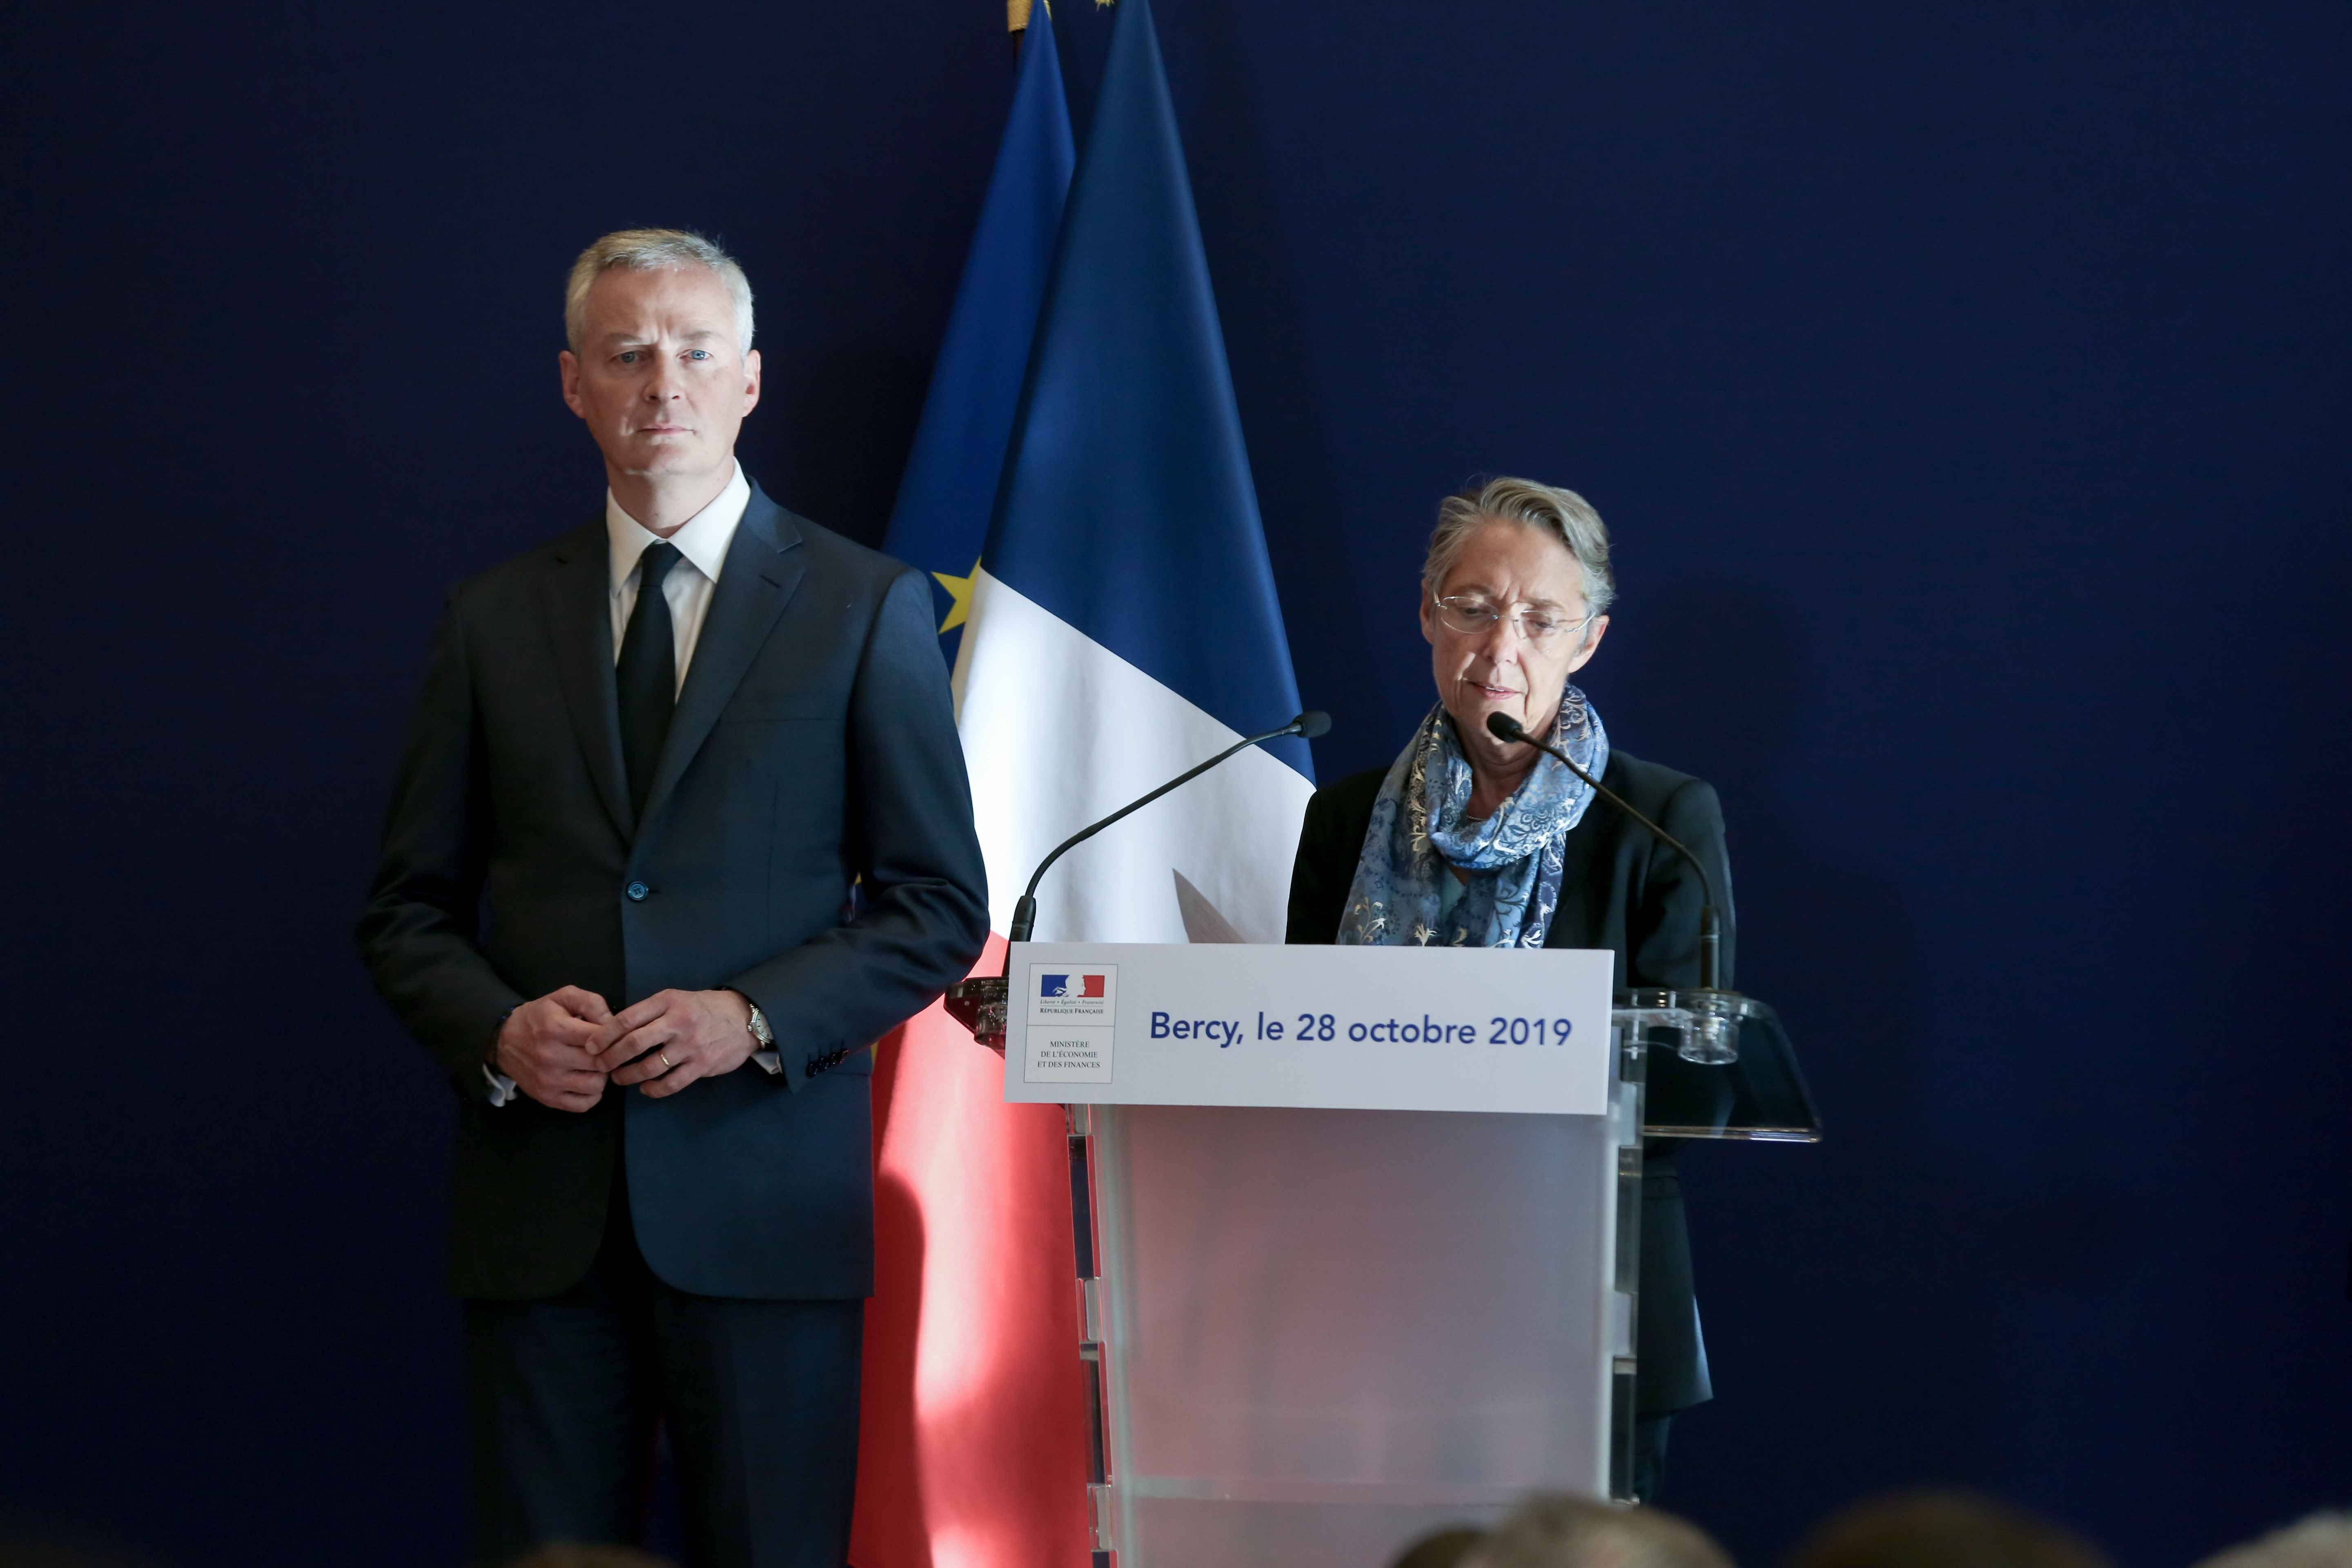 (From L to R) French Finance and Economy Minister Bruno Le Maire and French Minister for the Ecological and Inclusive Transition Elisabeth Borne give a joint press conference to present a report concerning the construction of the EPR at the Flamanville nuc